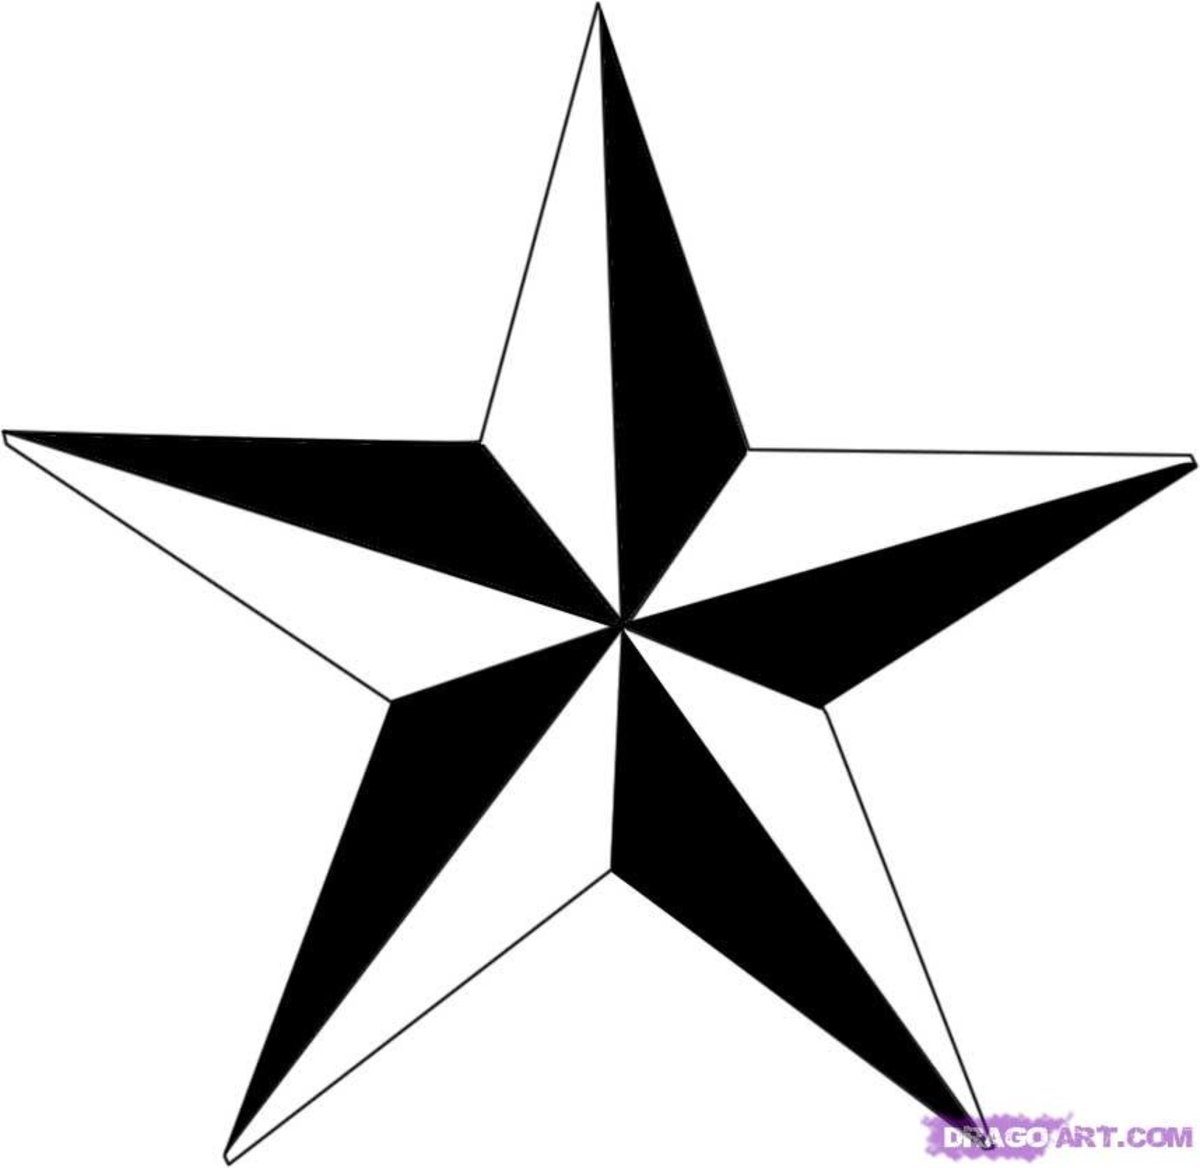 An example of a nautical star you can draw with this method.